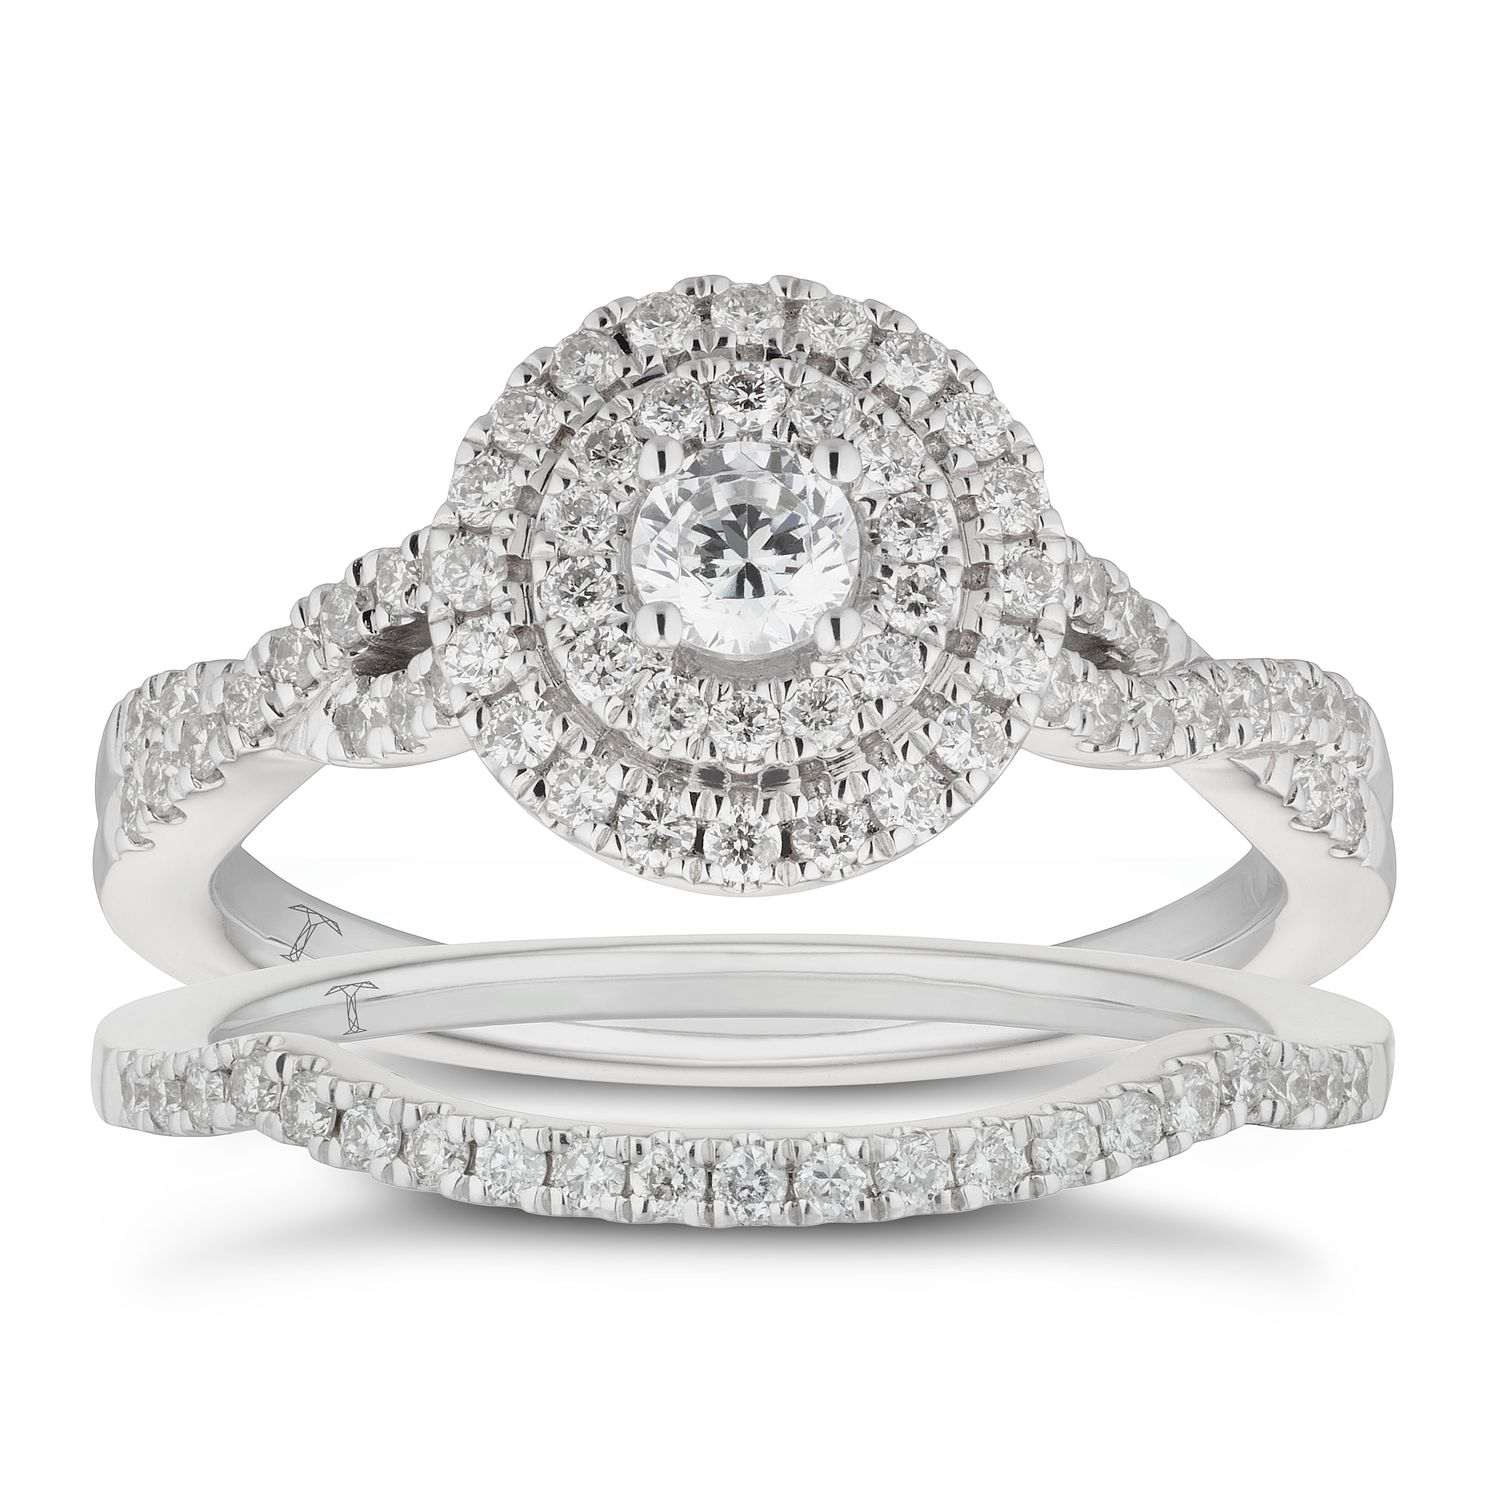 Tolkowsky 18ct White Gold 0.66ct Diamond Halo Bridal Set - Product number 5890268